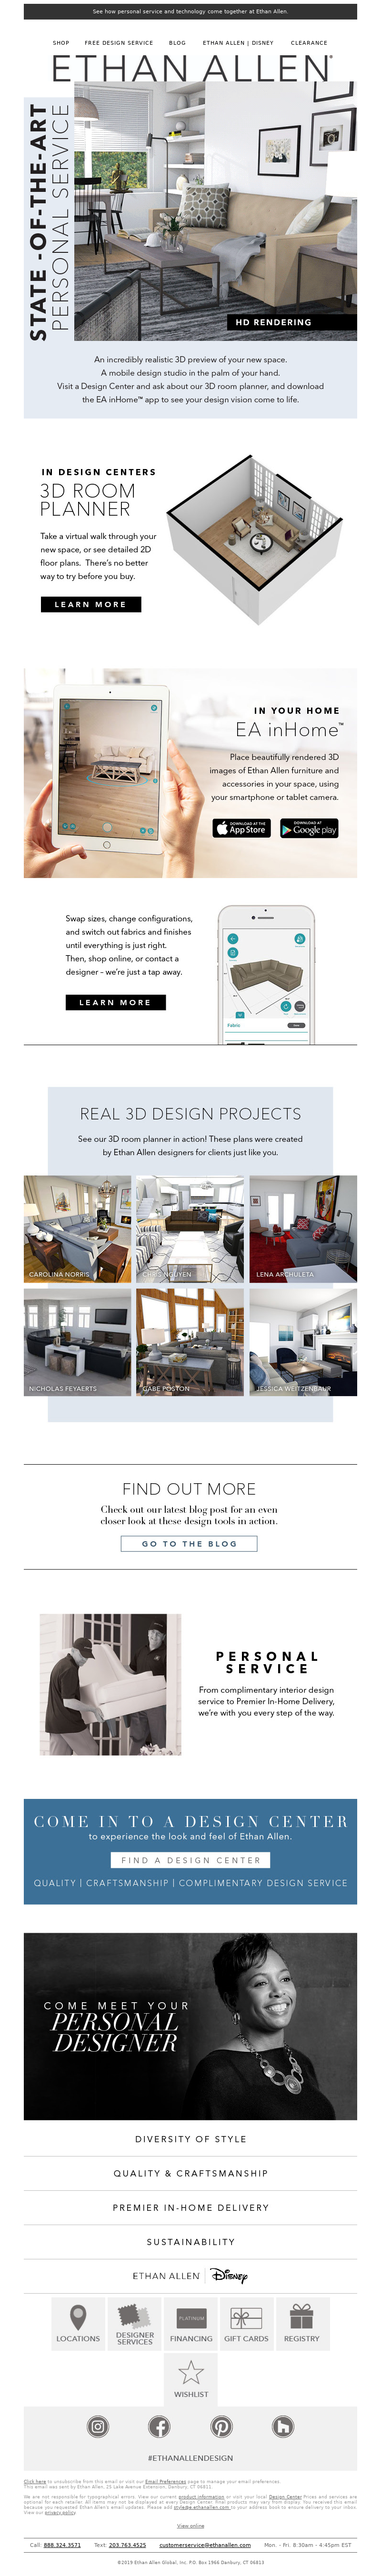 Ethan Allen - The future of design is here!